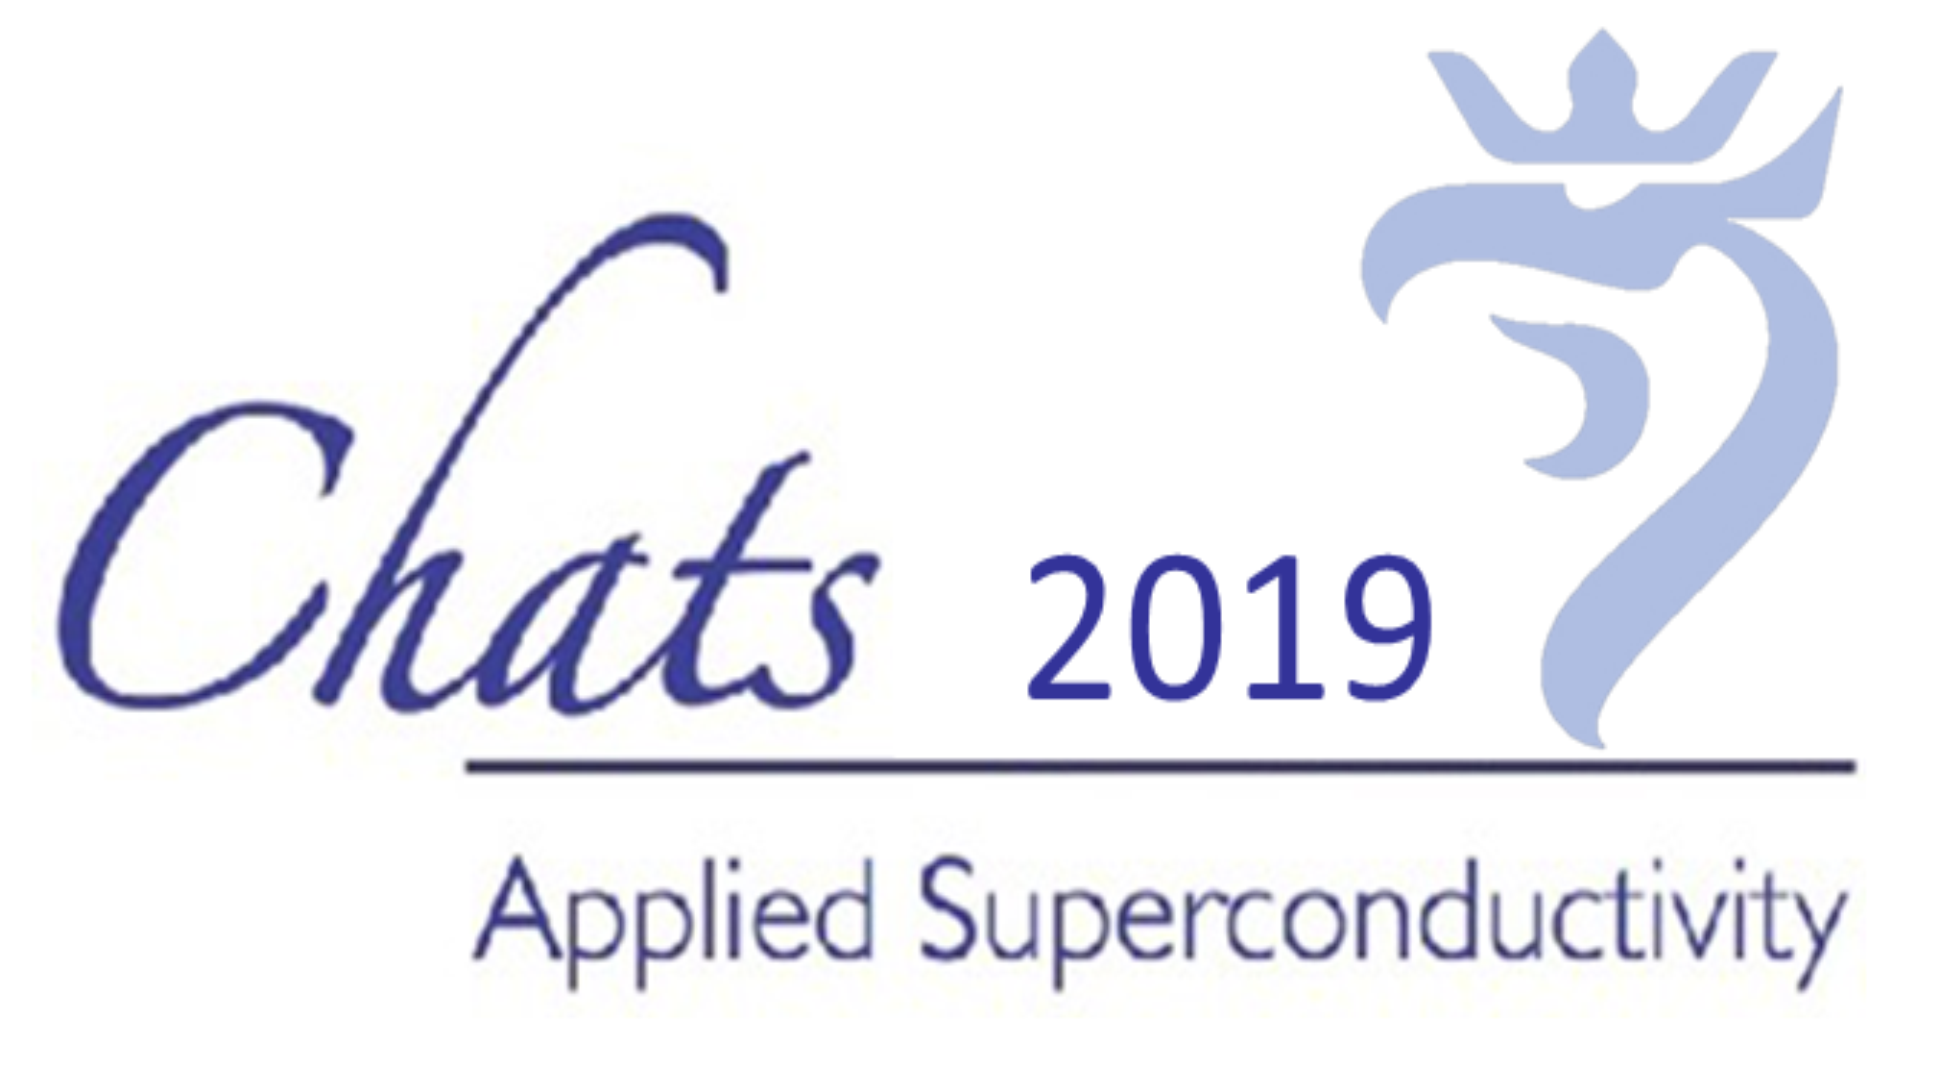 Chats On Applied Superconductivity 2019 9 12 July 2019 Overview Indico